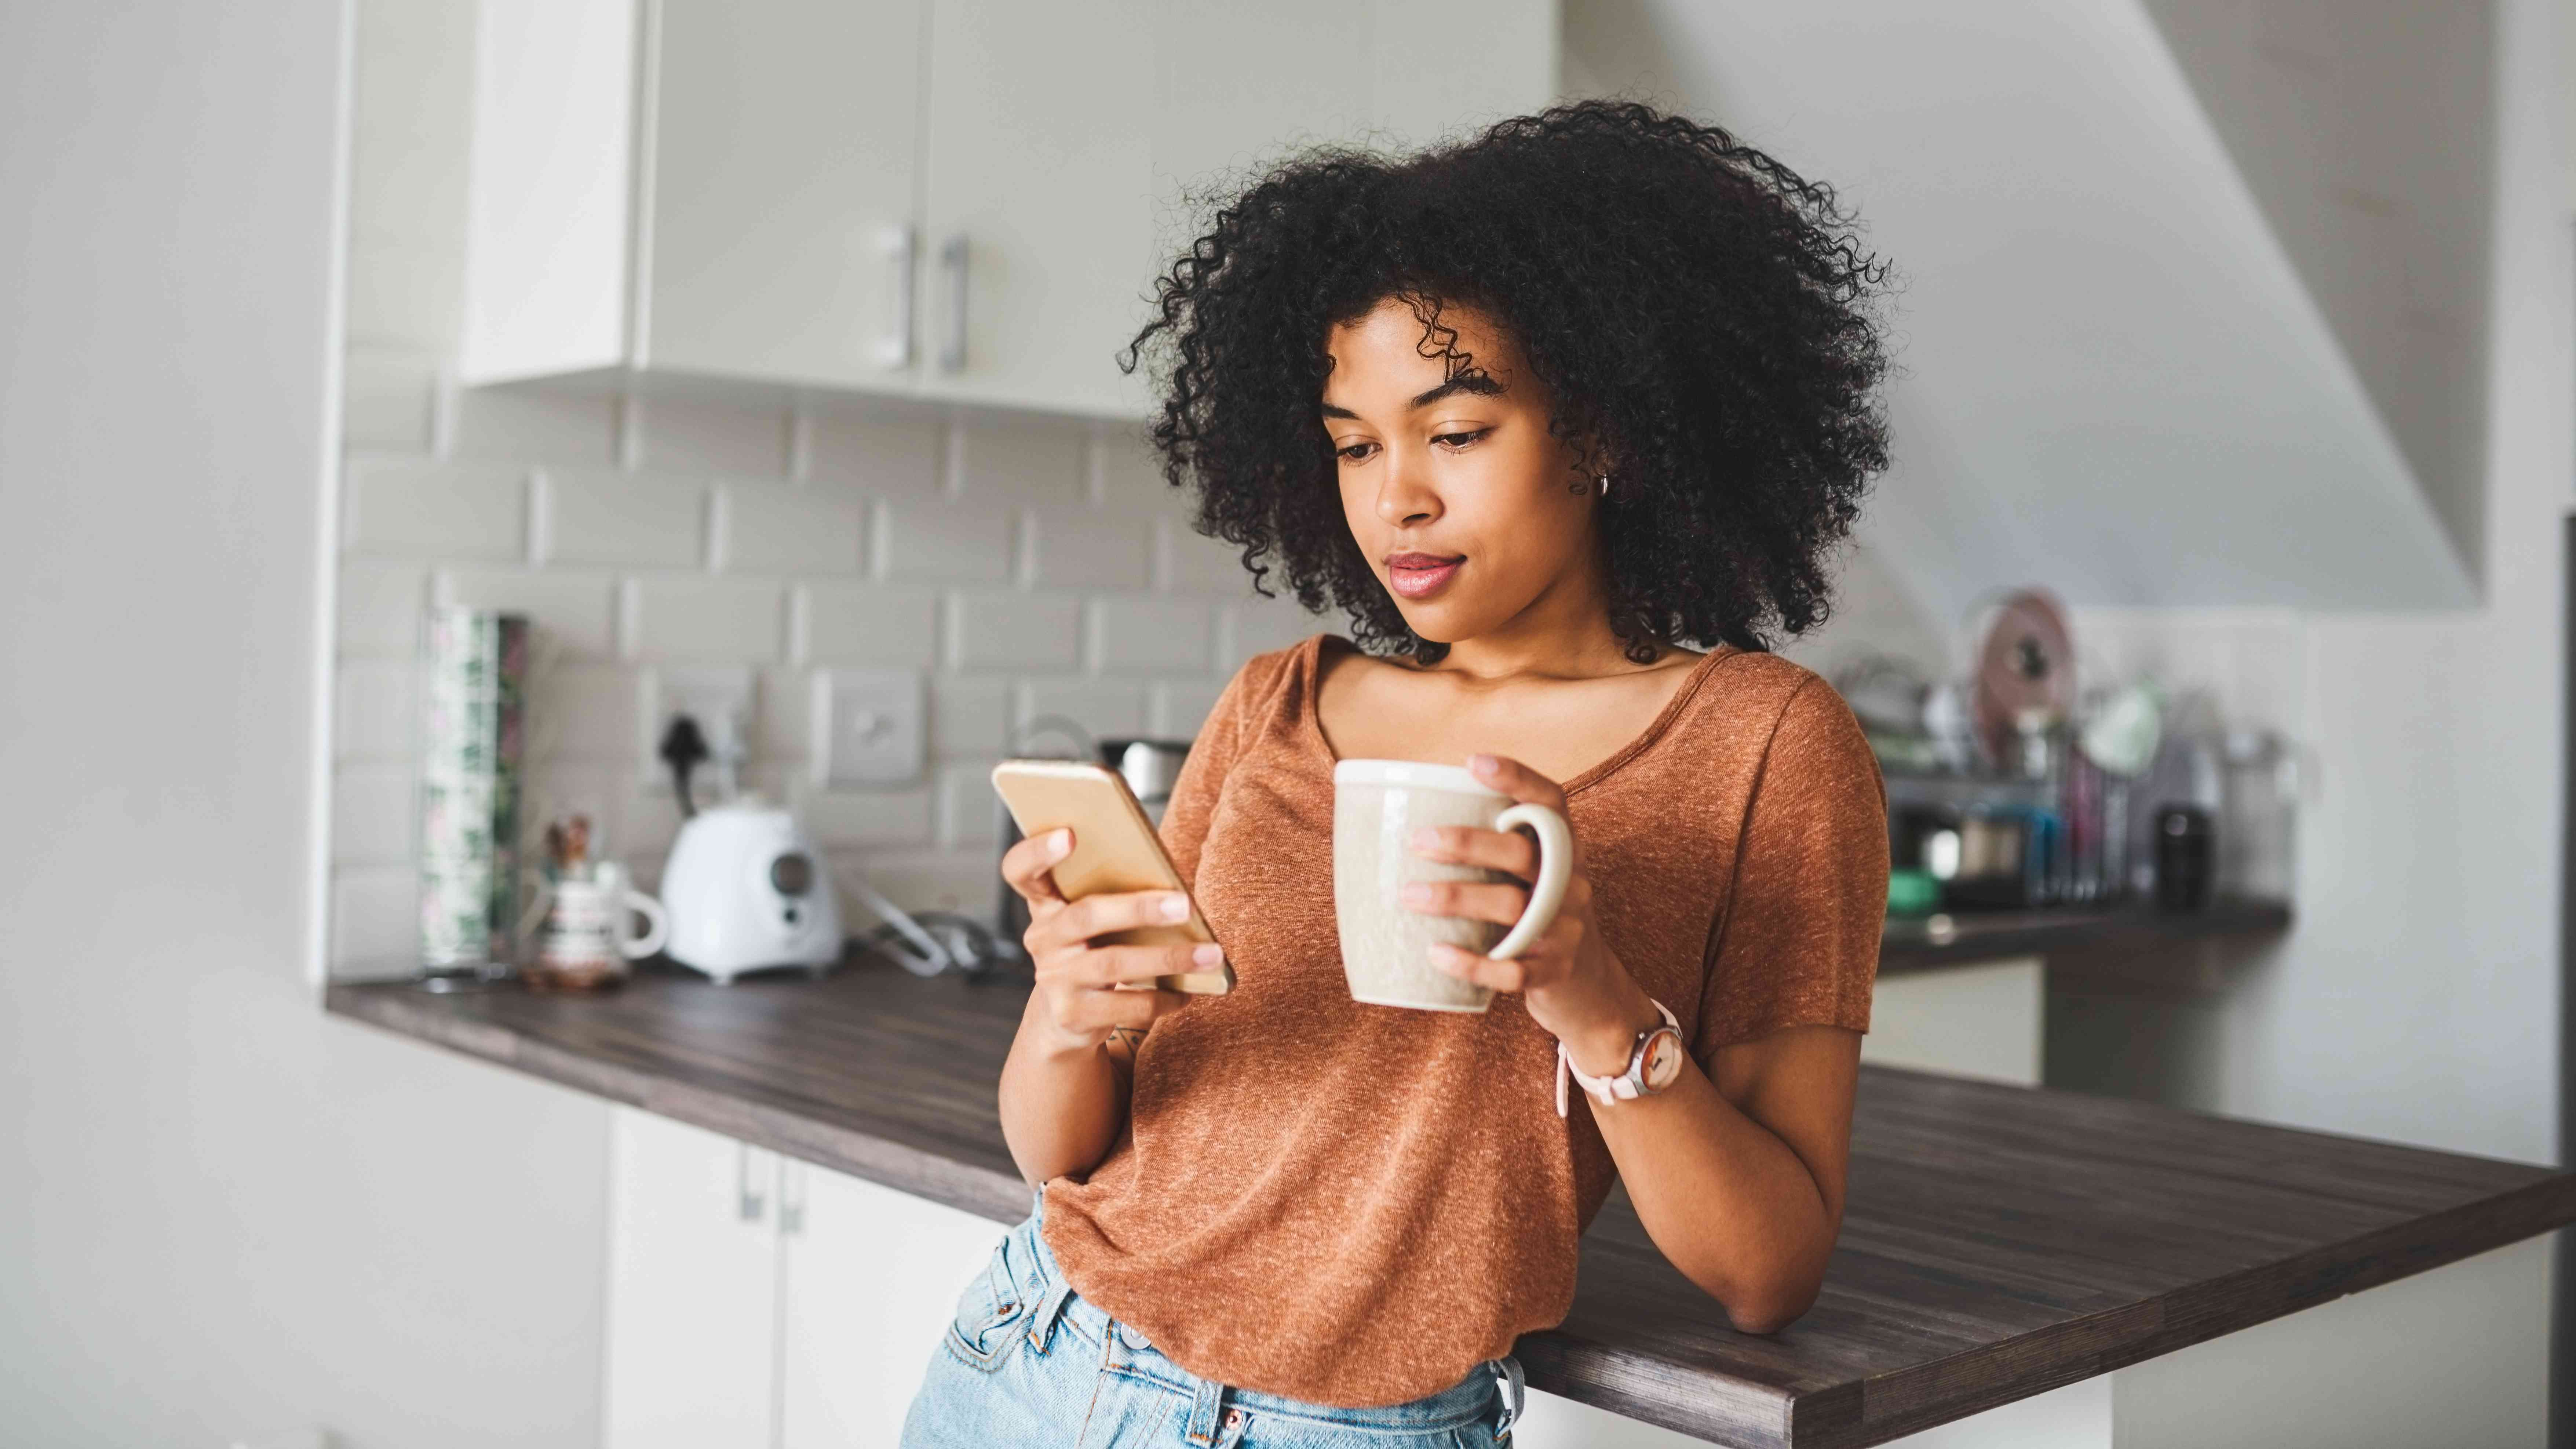 Social media influencer holding a smartphone and coffee while blocking someone on Instagram